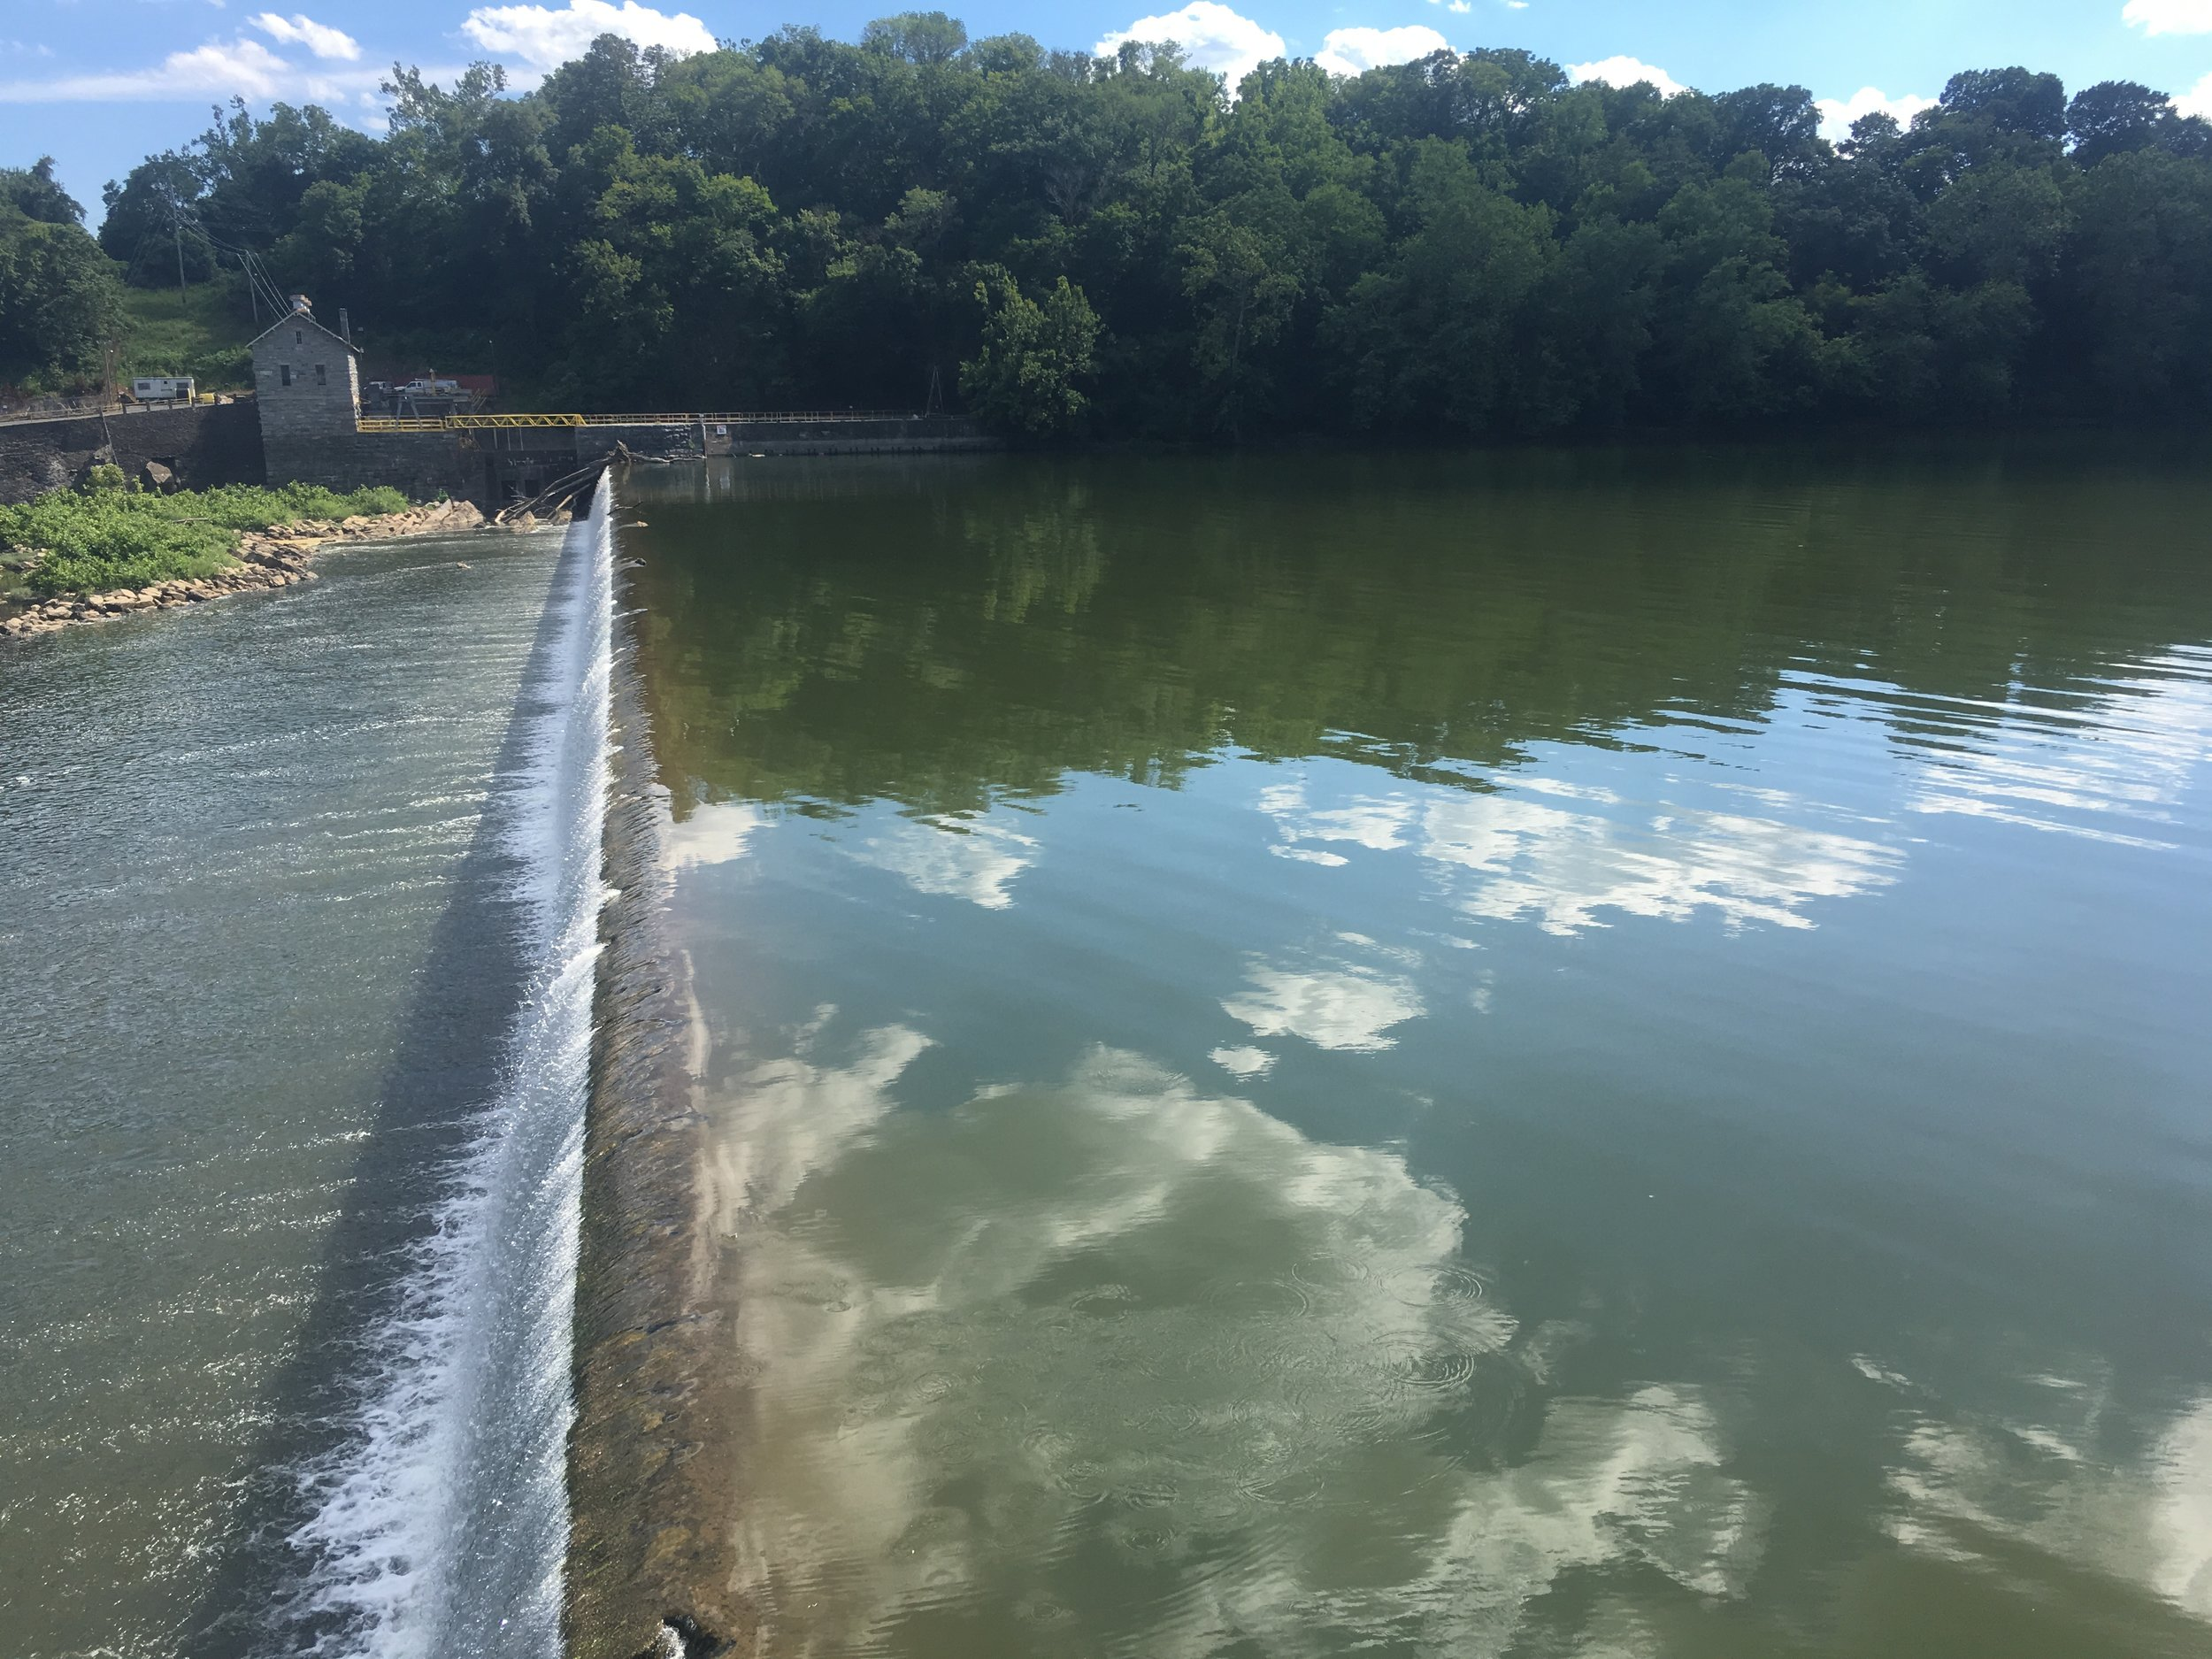 One of the many dams along the C&O Canal